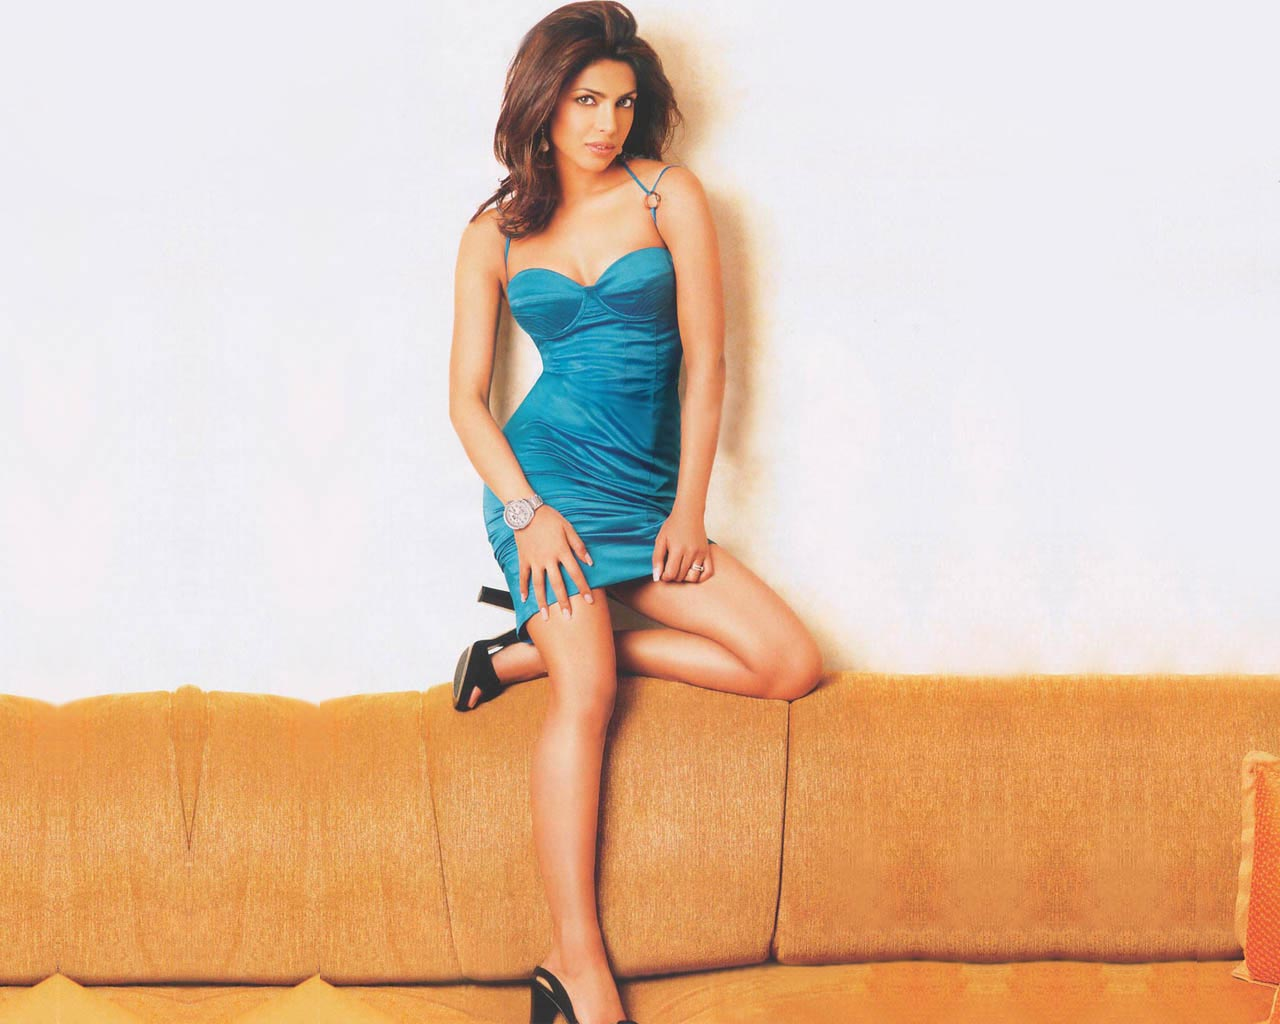 WALLPAPERS WORLD : Priyanka chopra